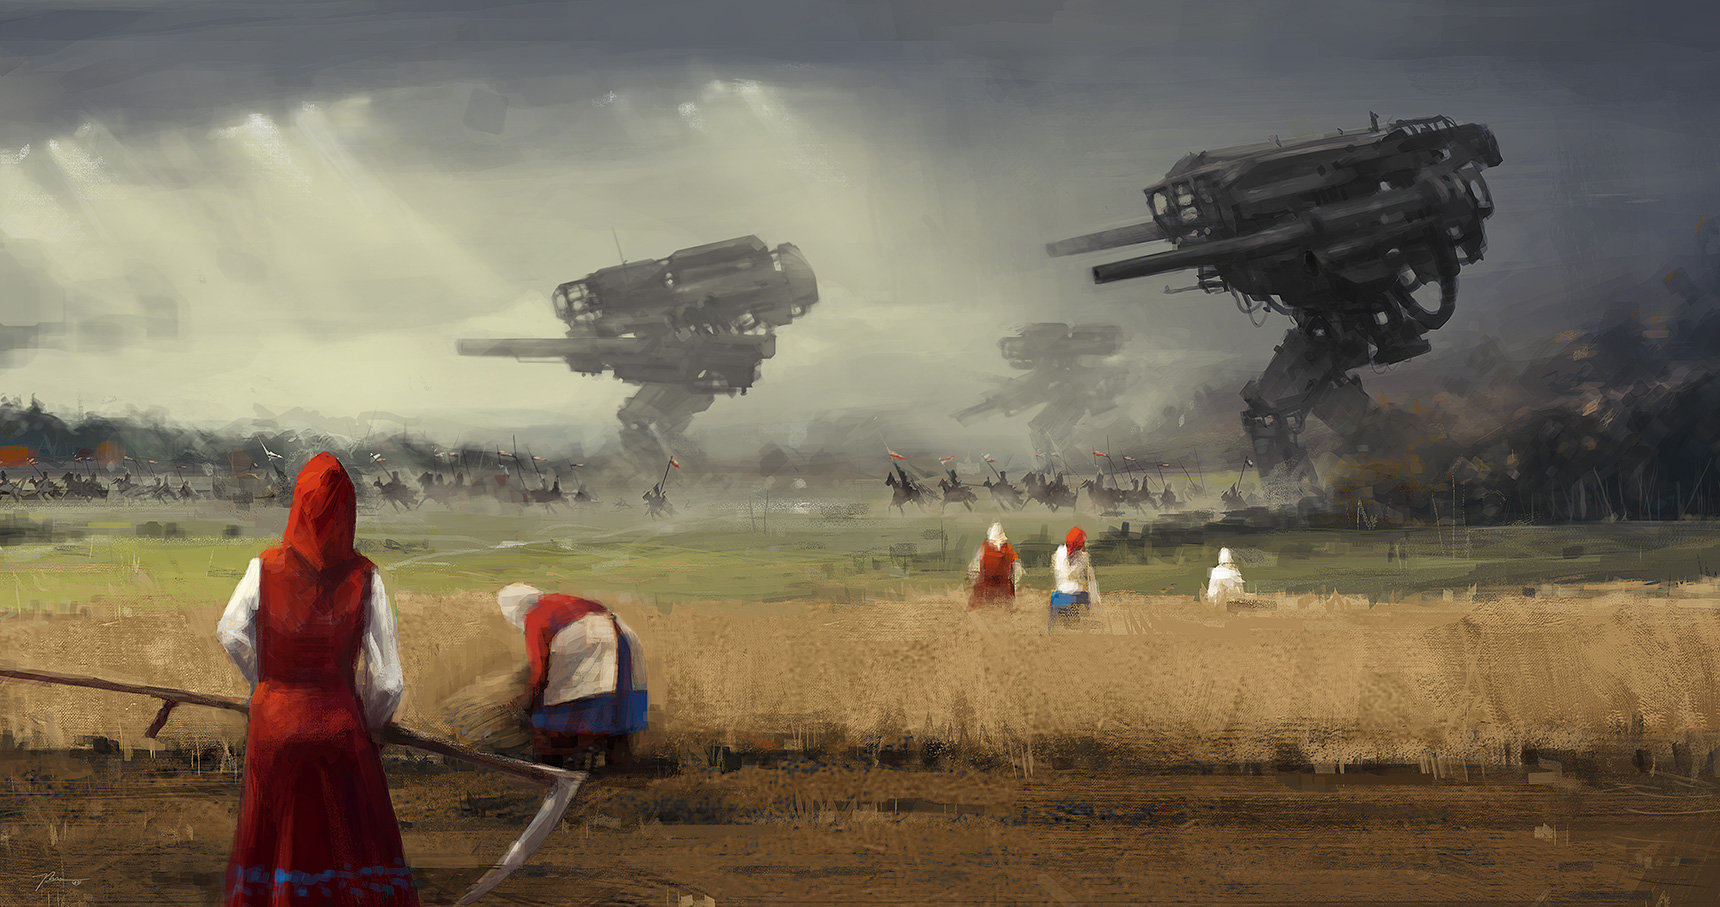 Jakub_Rozalski_-_1920 before the storm